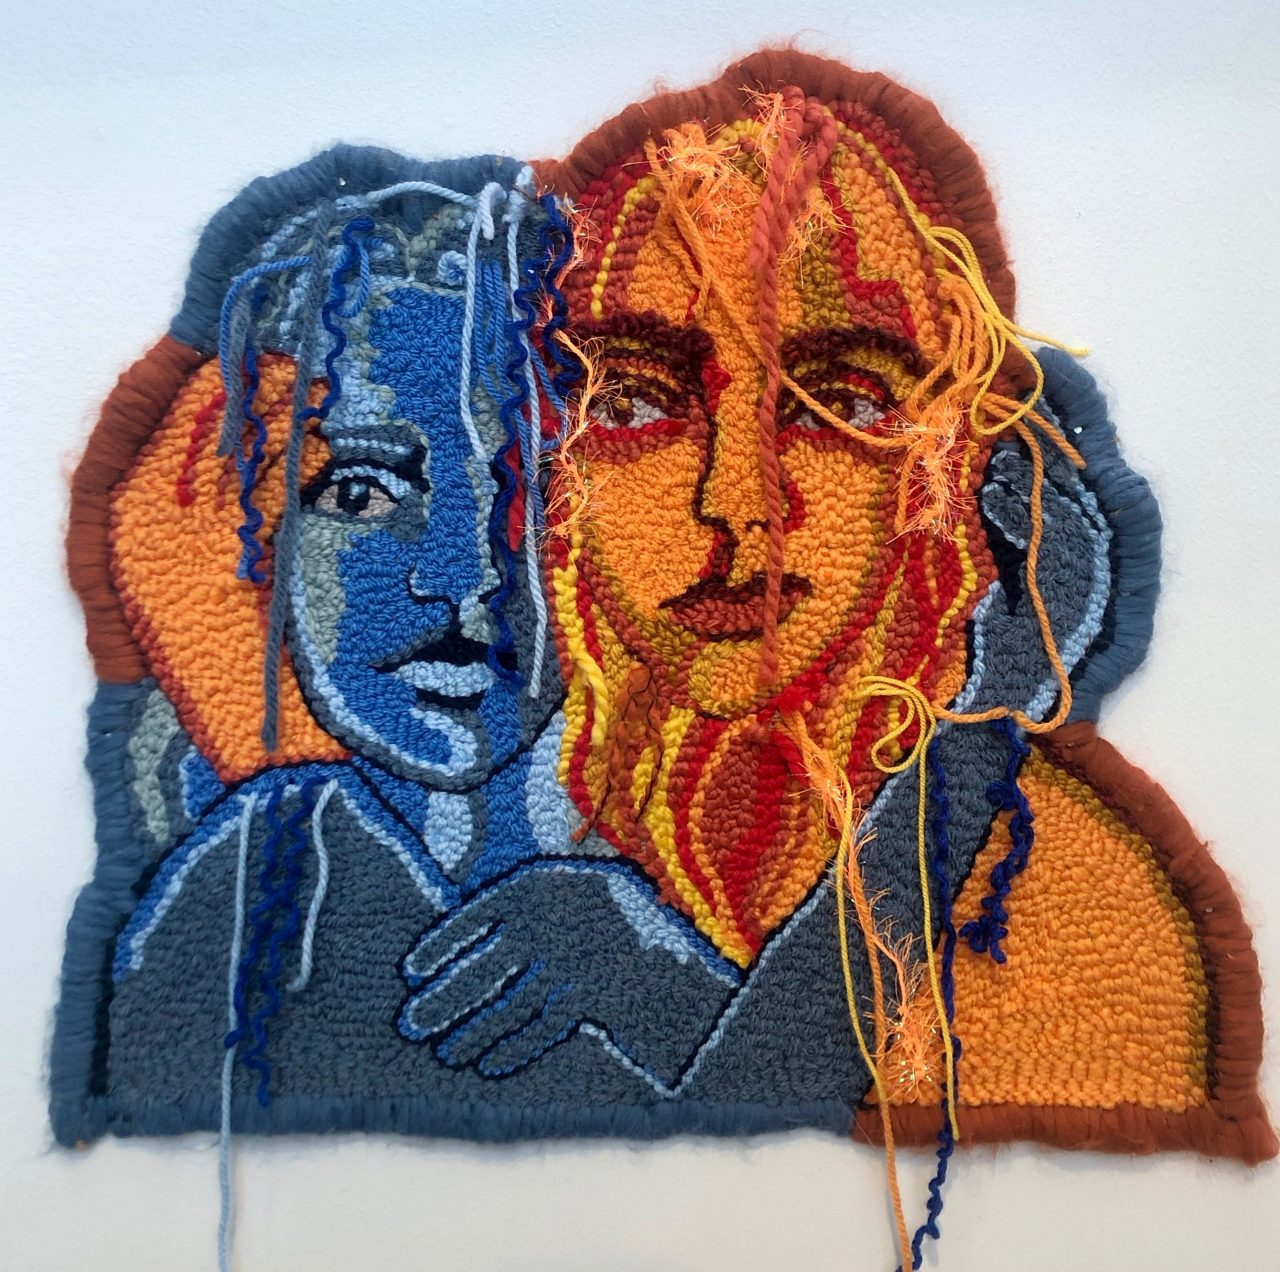 textile art by Selby Hurst Inglefield of 2 people, one in blues and the other in yellow and orange tones